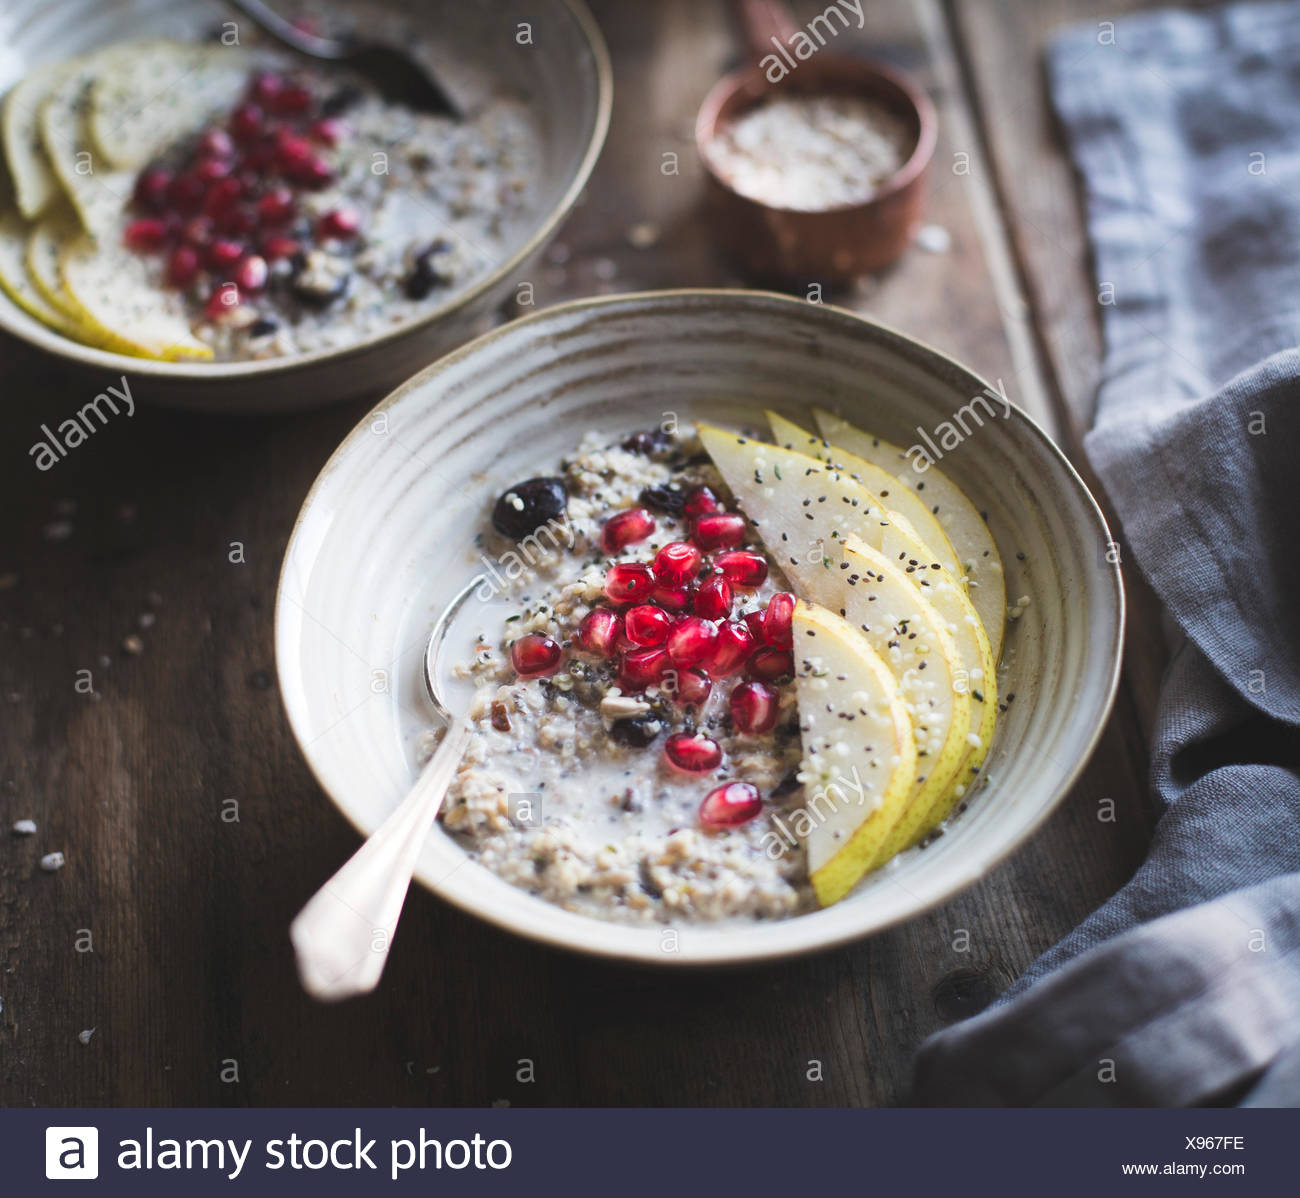 Seeded oatmeal (hemp, flax, chia, sunflower seed) with pear and pomegranate - Stock Image